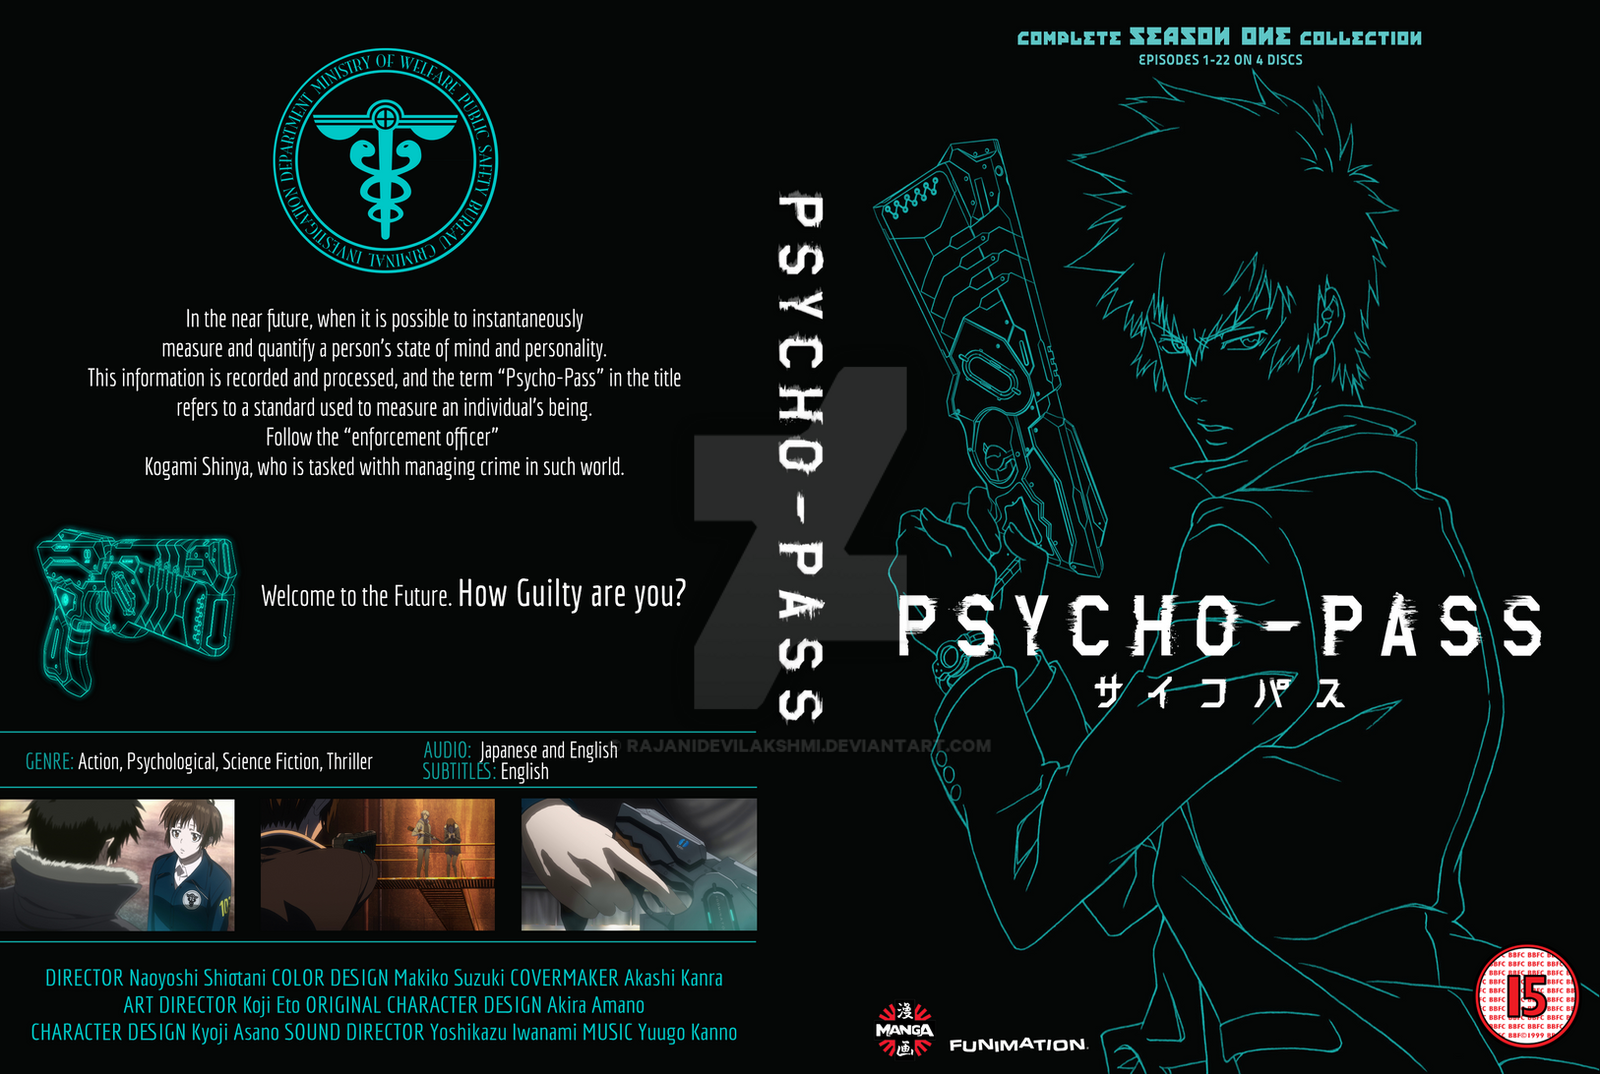 Psycho Pass Season 3 Trailer Food Truck Race Season 3 Episode 4